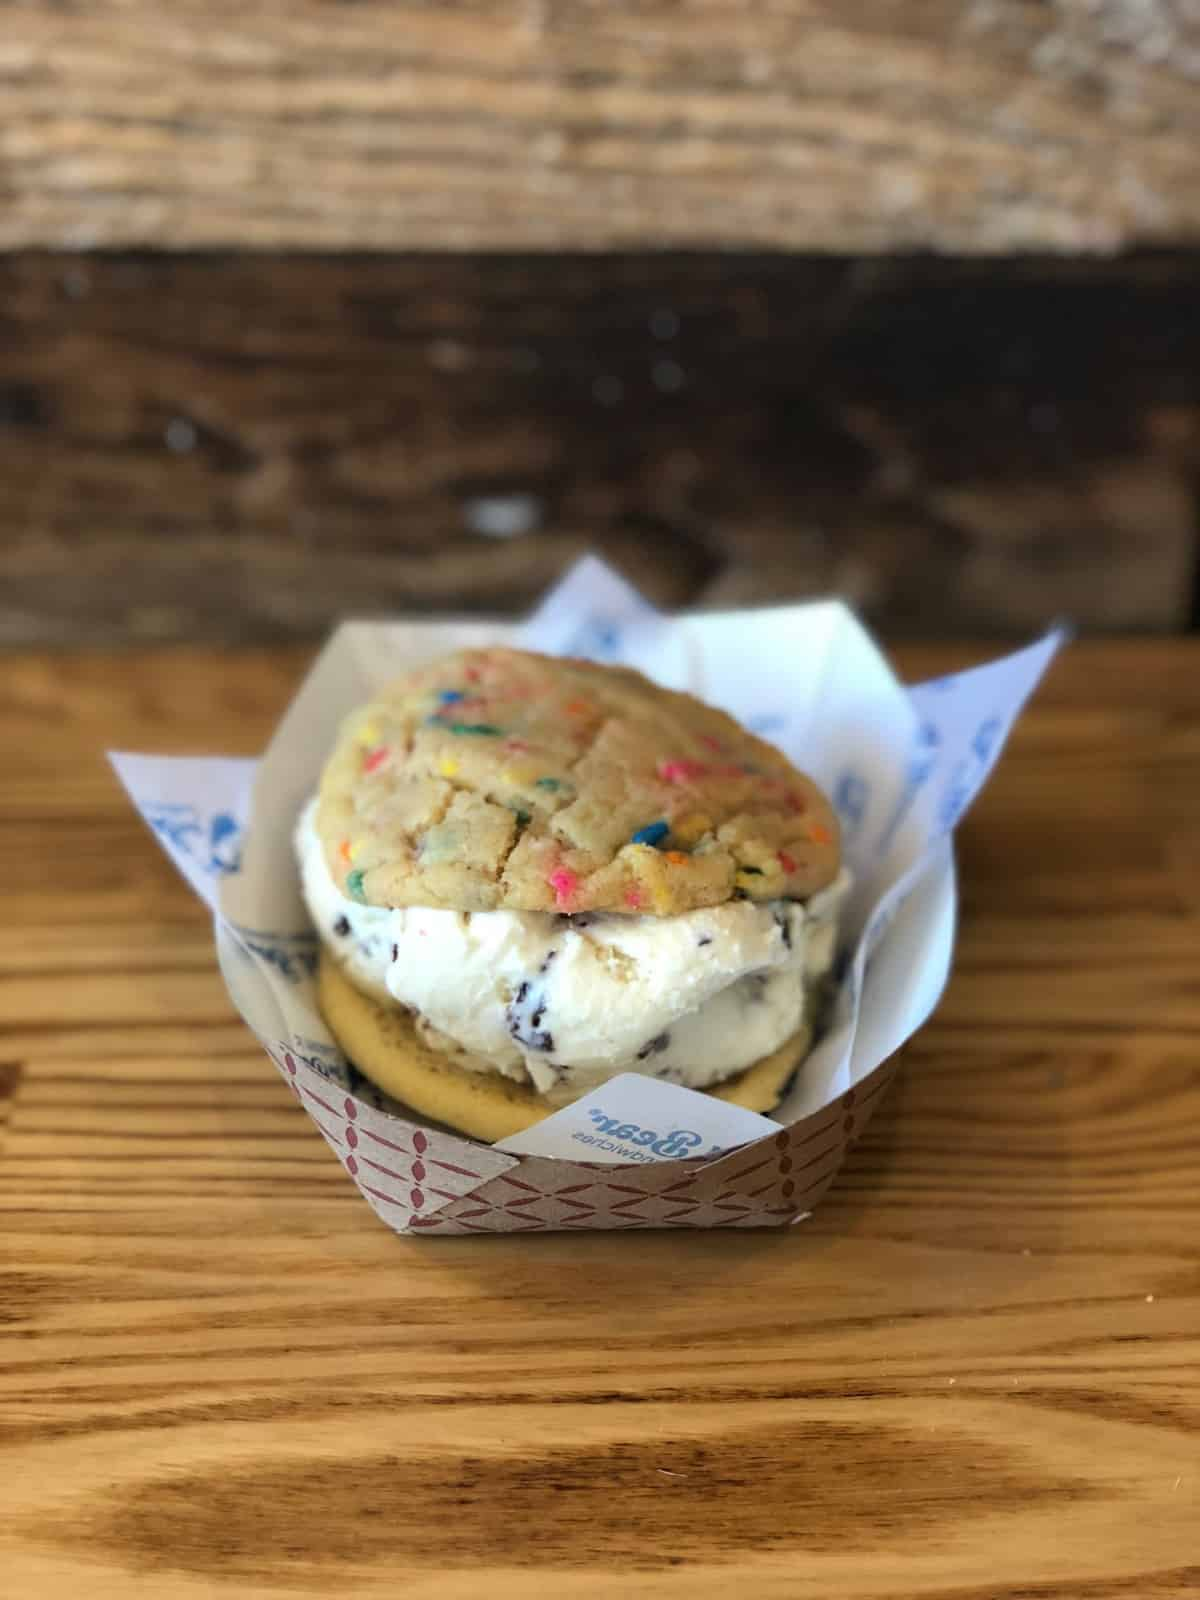 Ice cream cookie sandwich with funfetti cookies and chocolate chip cookie dough ice cream from Baked Bear in San Diego, CA